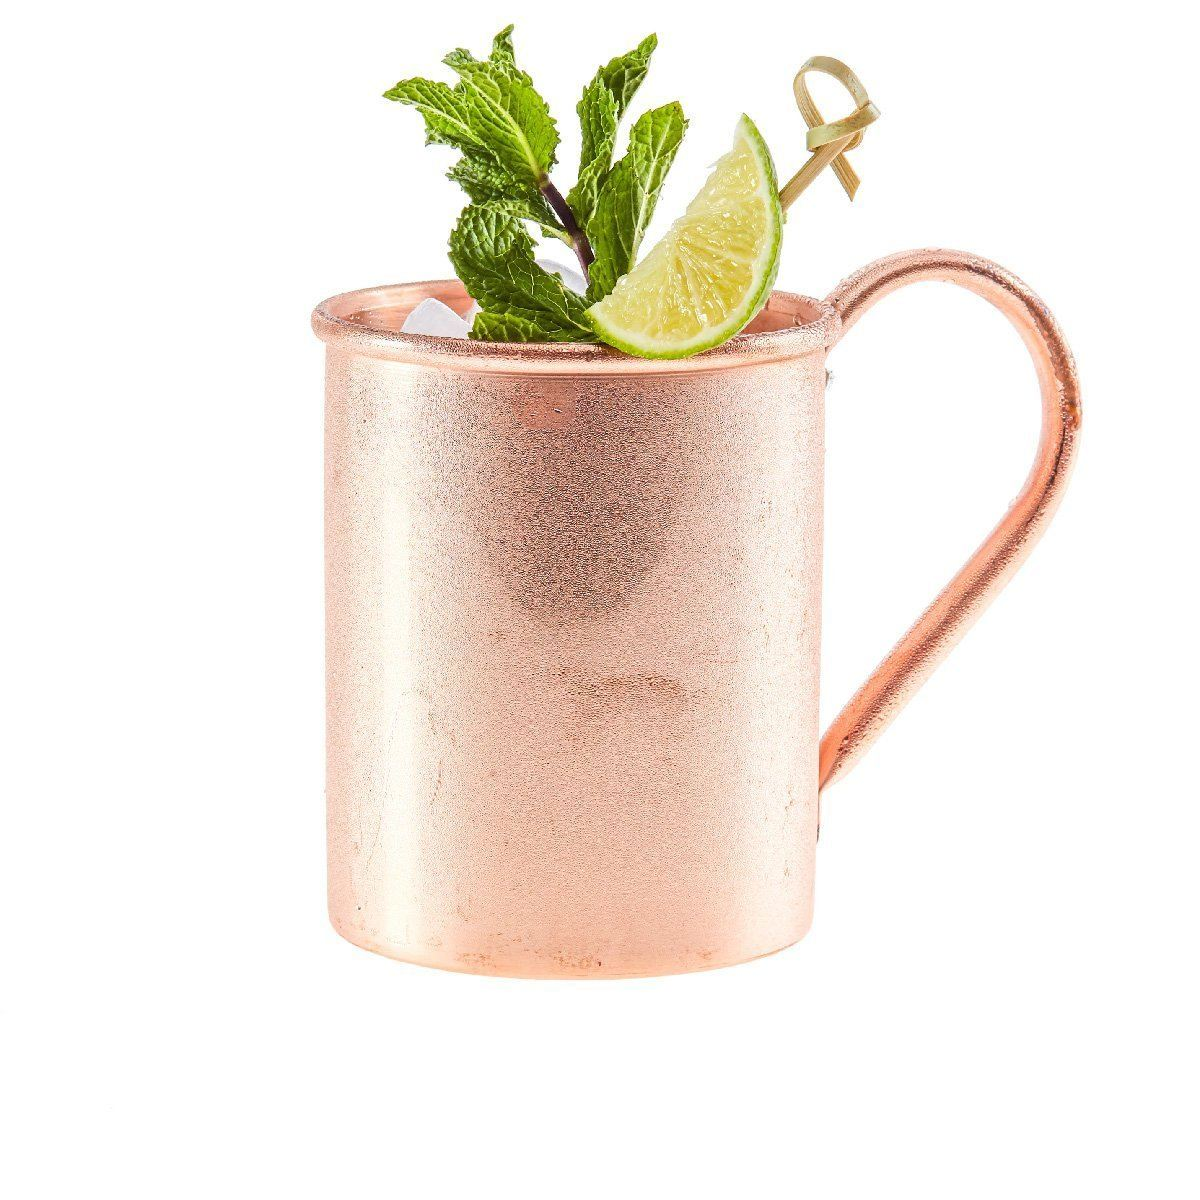 Copper mug with a moscow mule garnished with mint and lime